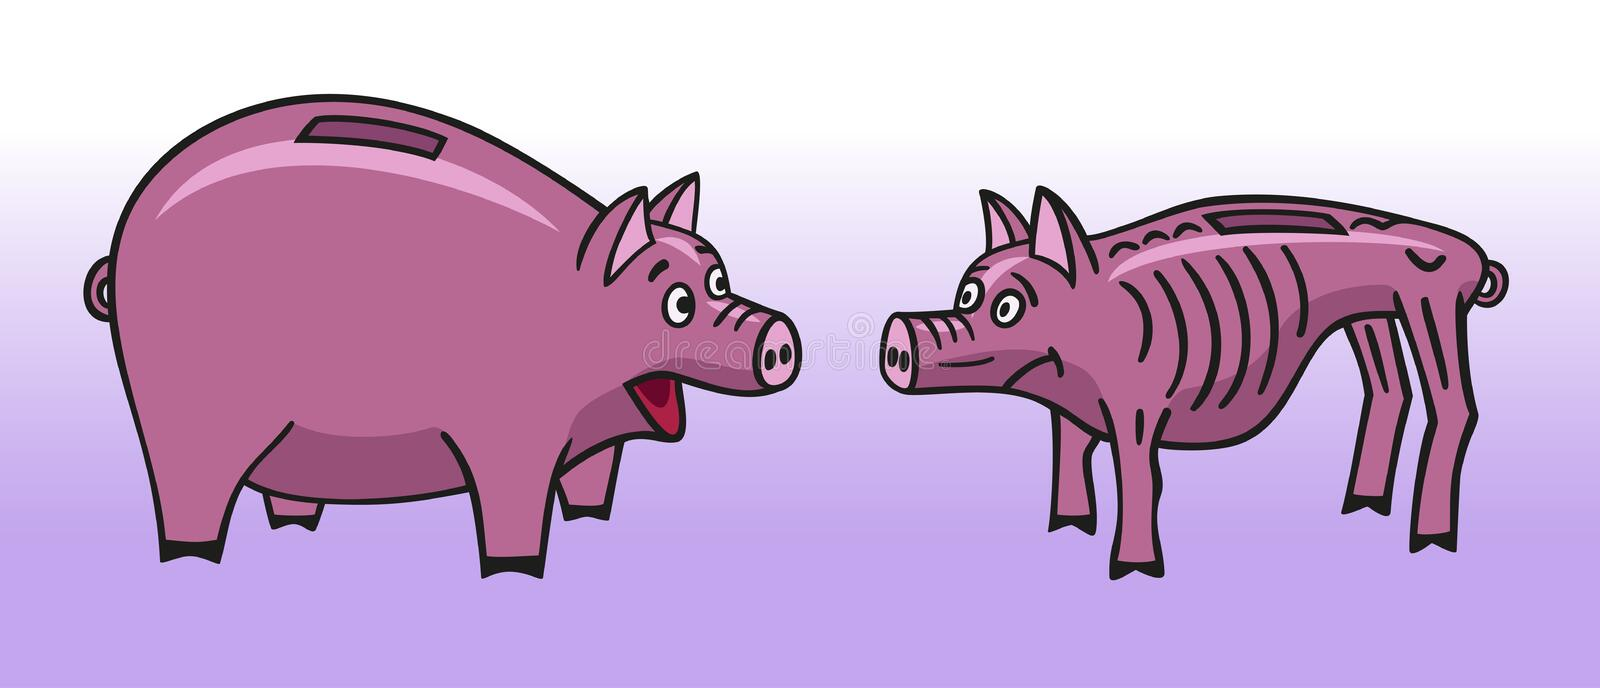 Two Piggy Bank. Stock Photography